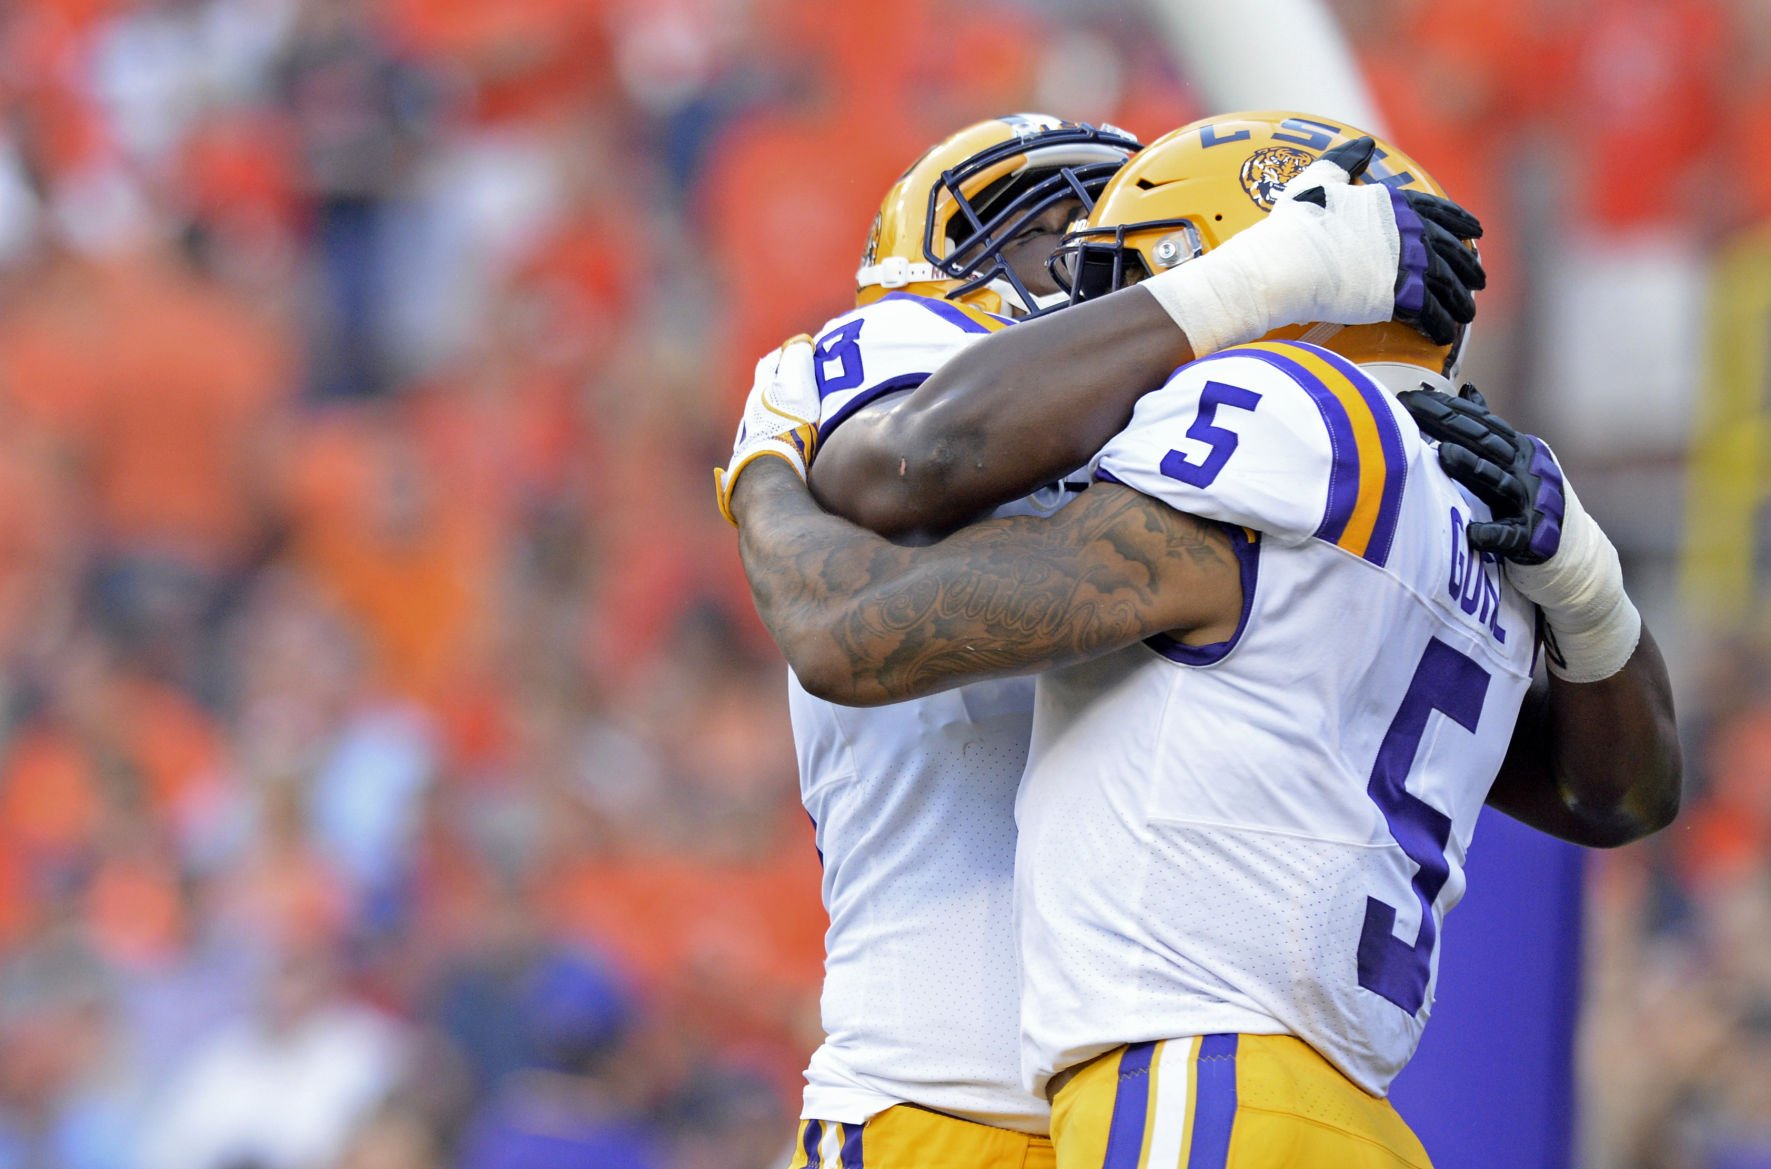 Troy conquers Tiger Stadium, takes down LSU in stunning 24-21 defeat